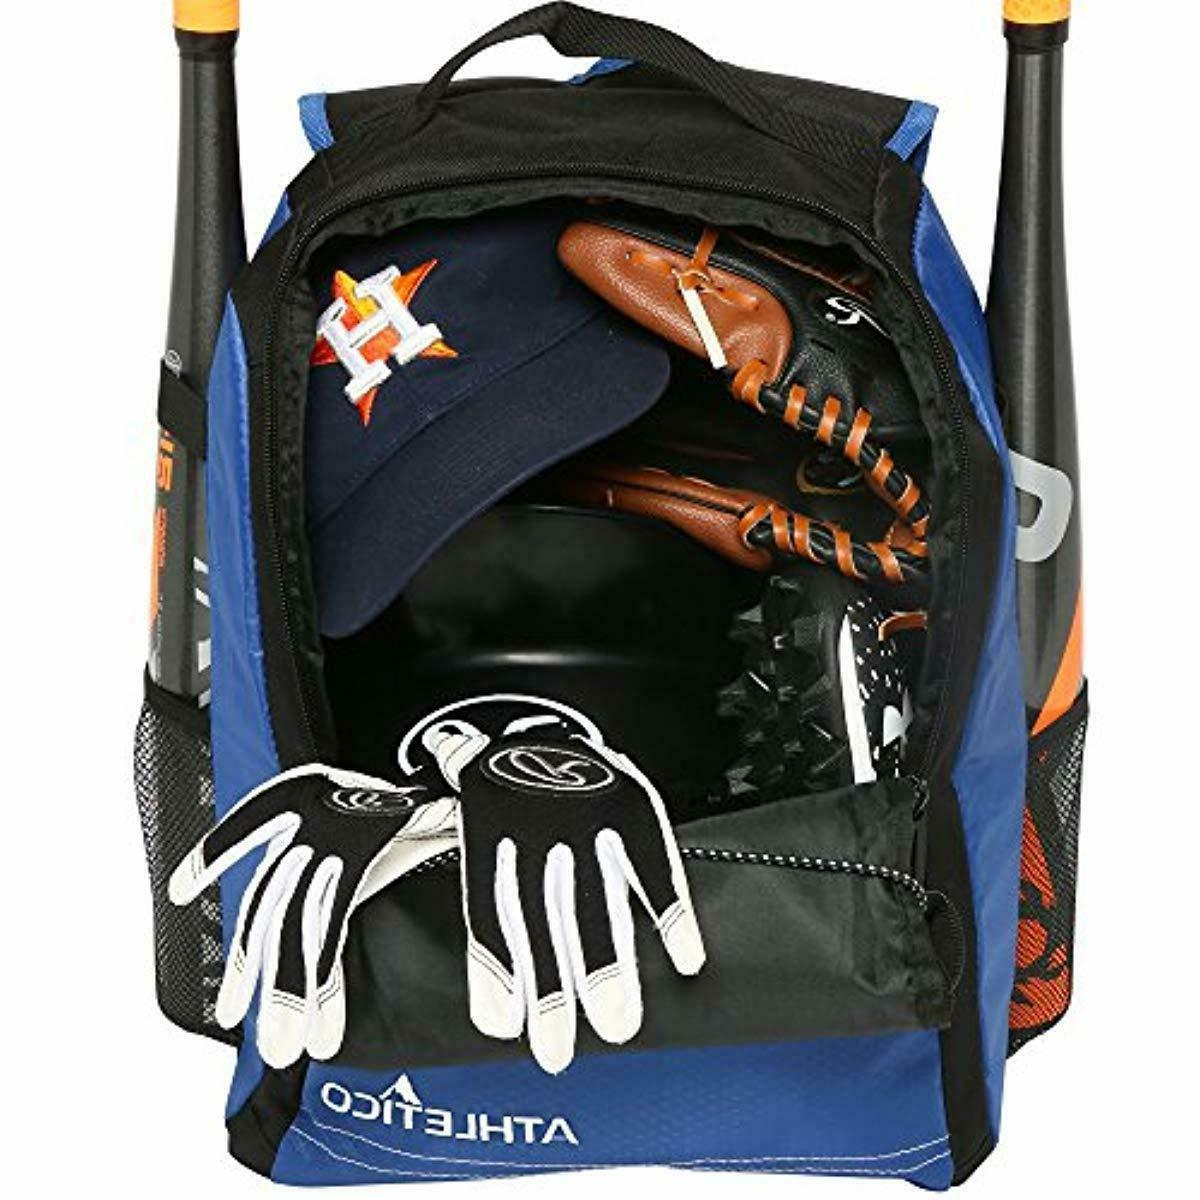 Athletico Youth Baseball - Backpack Baseball, & Equi